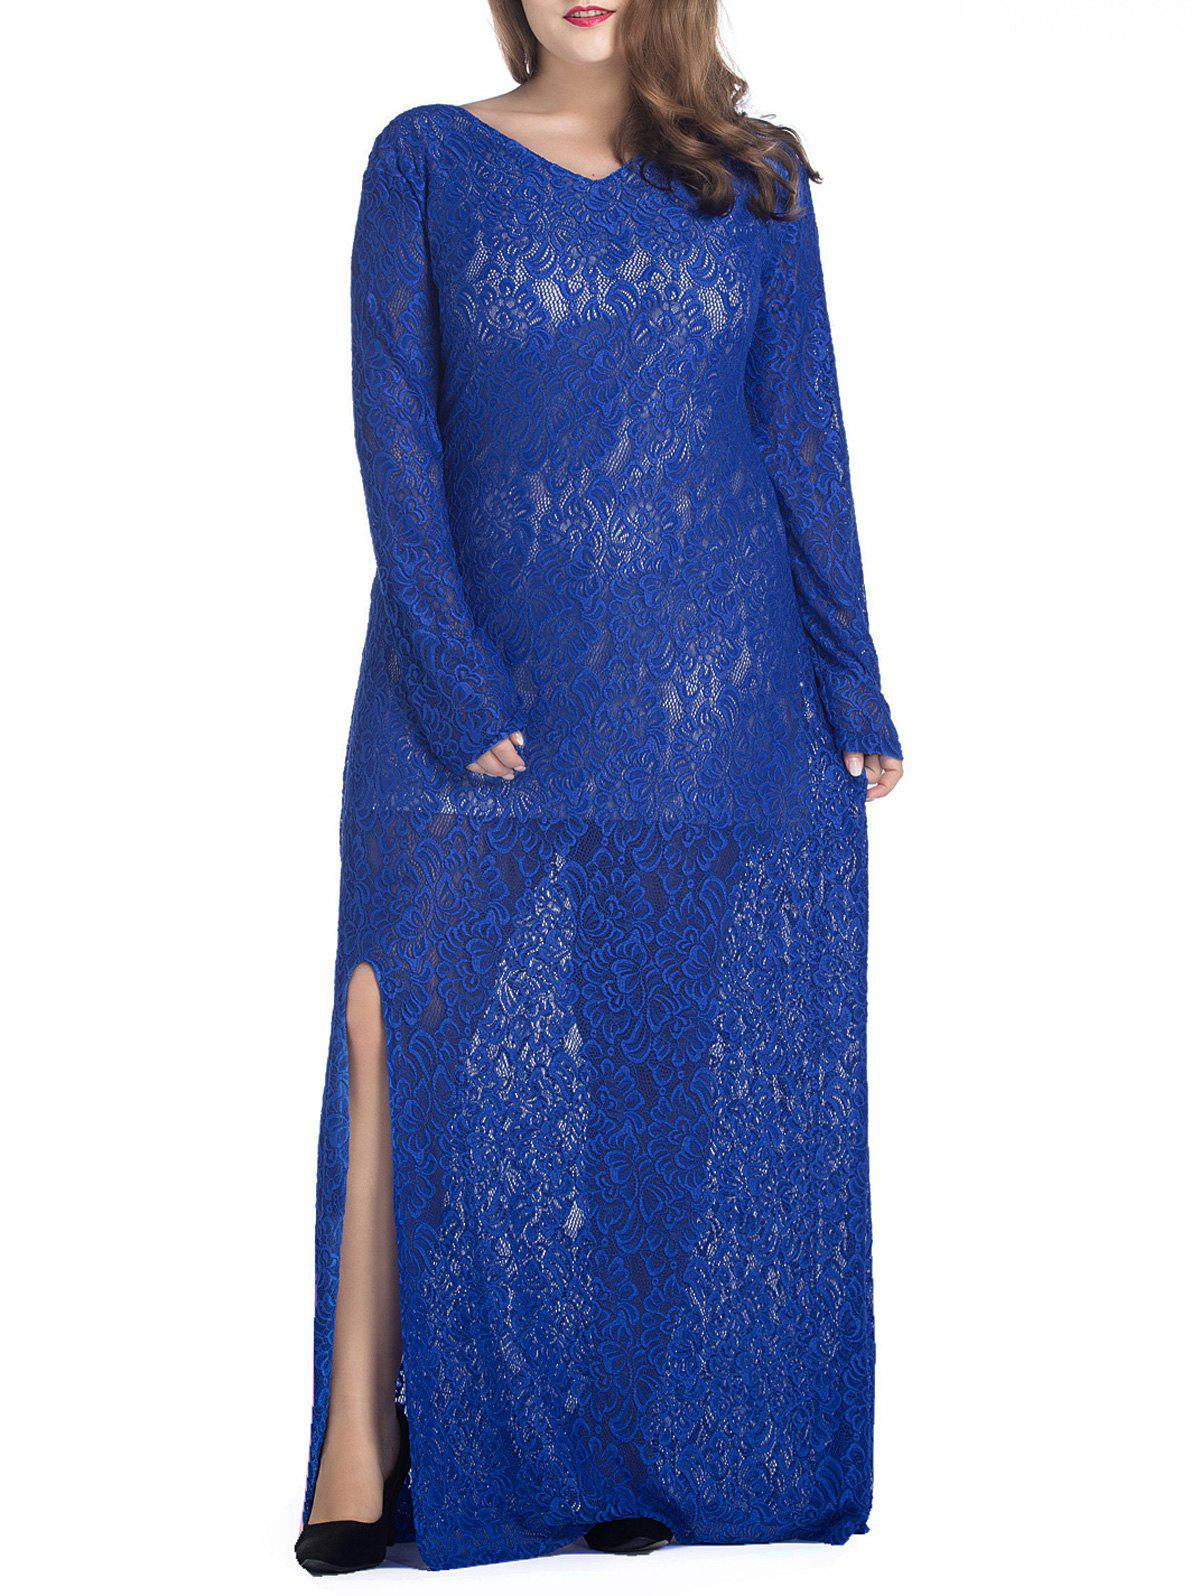 Plus Size Maxi Lace Long Sleeve Sheer Dress - BLUE XL